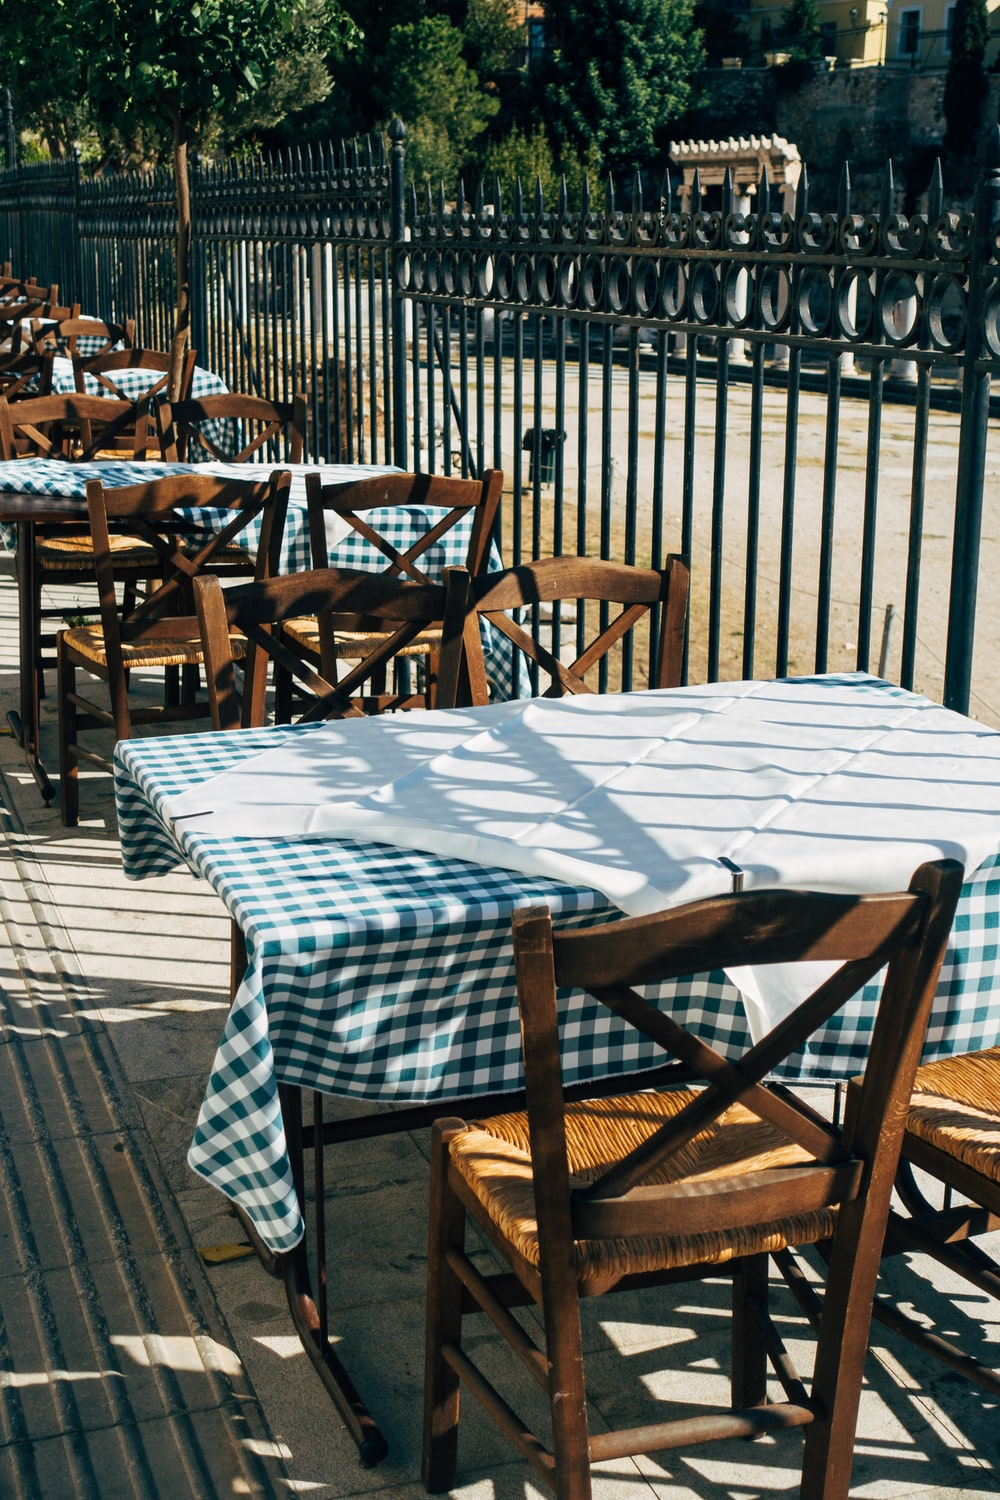 brown wooden chairs and table